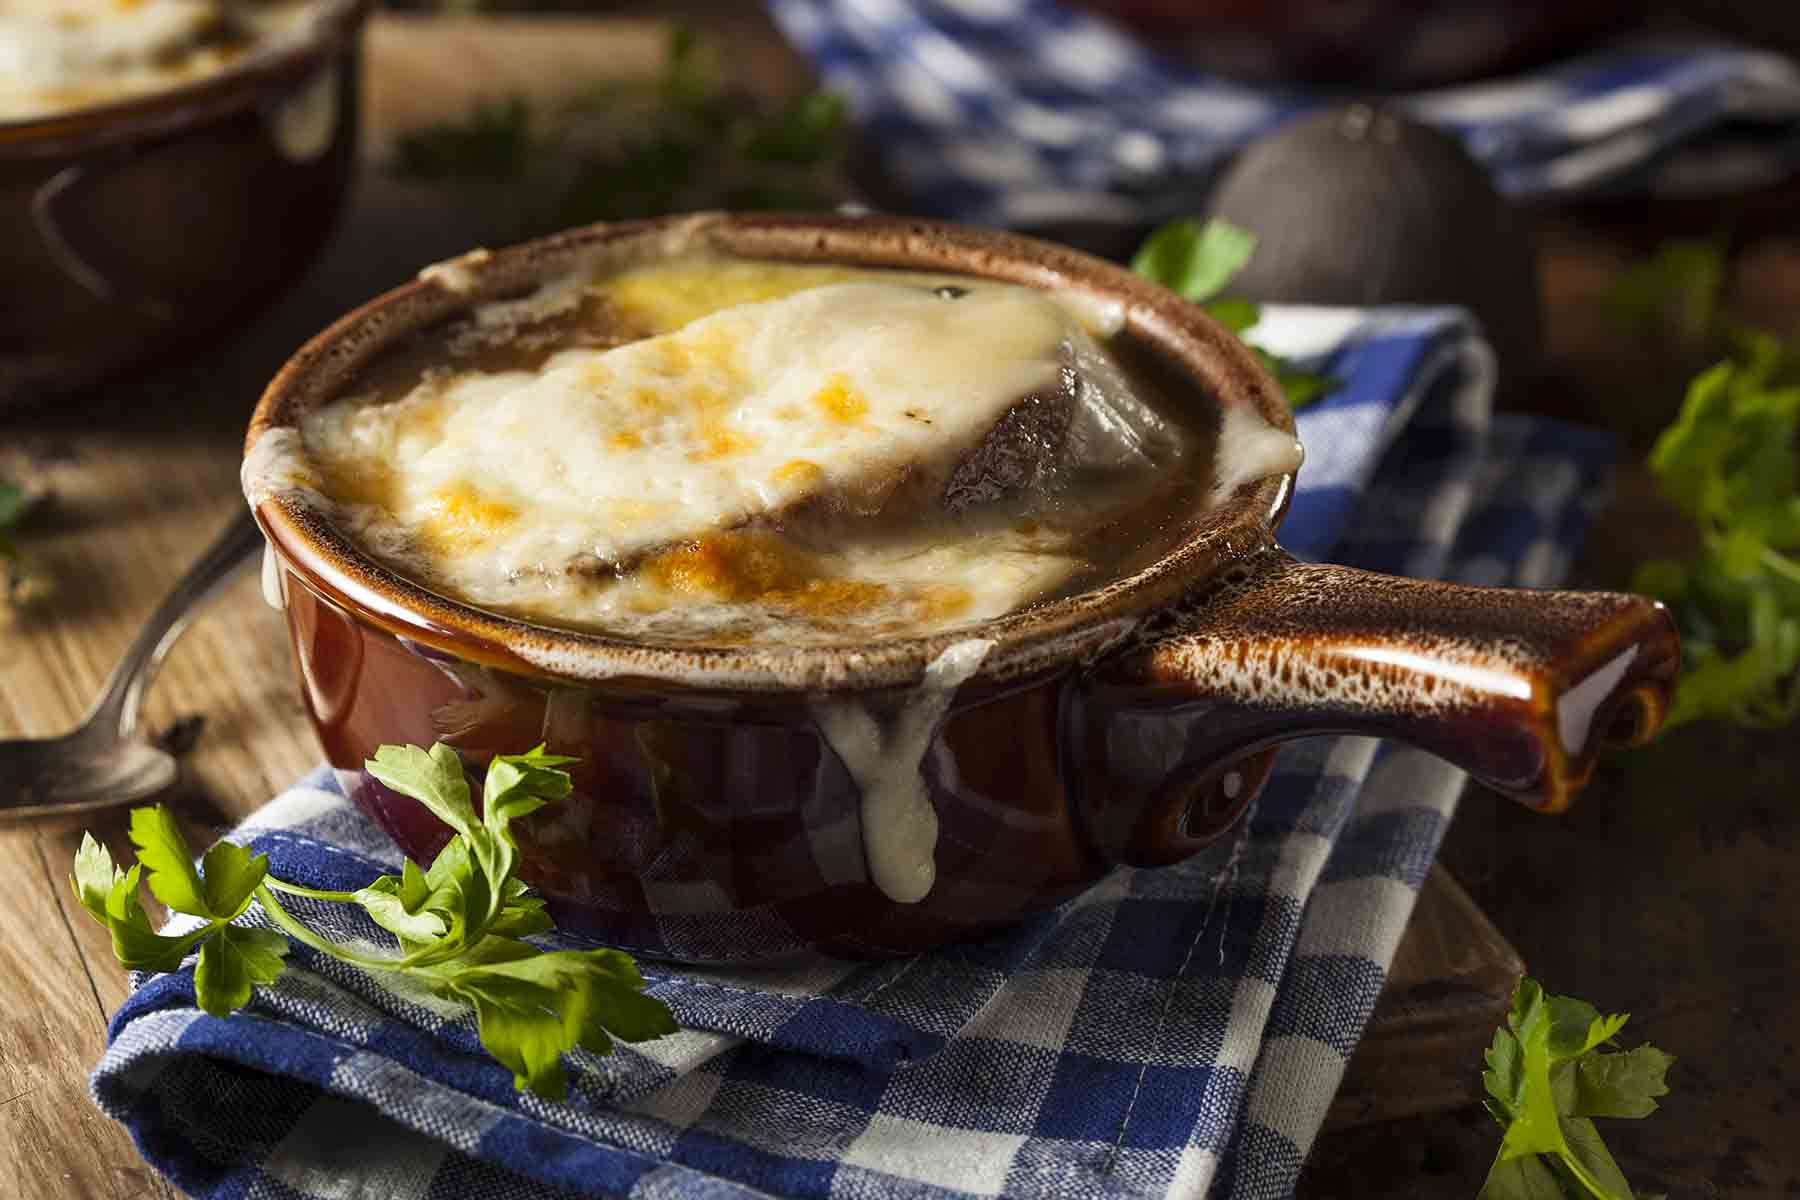 French Onion Soup from Mammoth Tavern